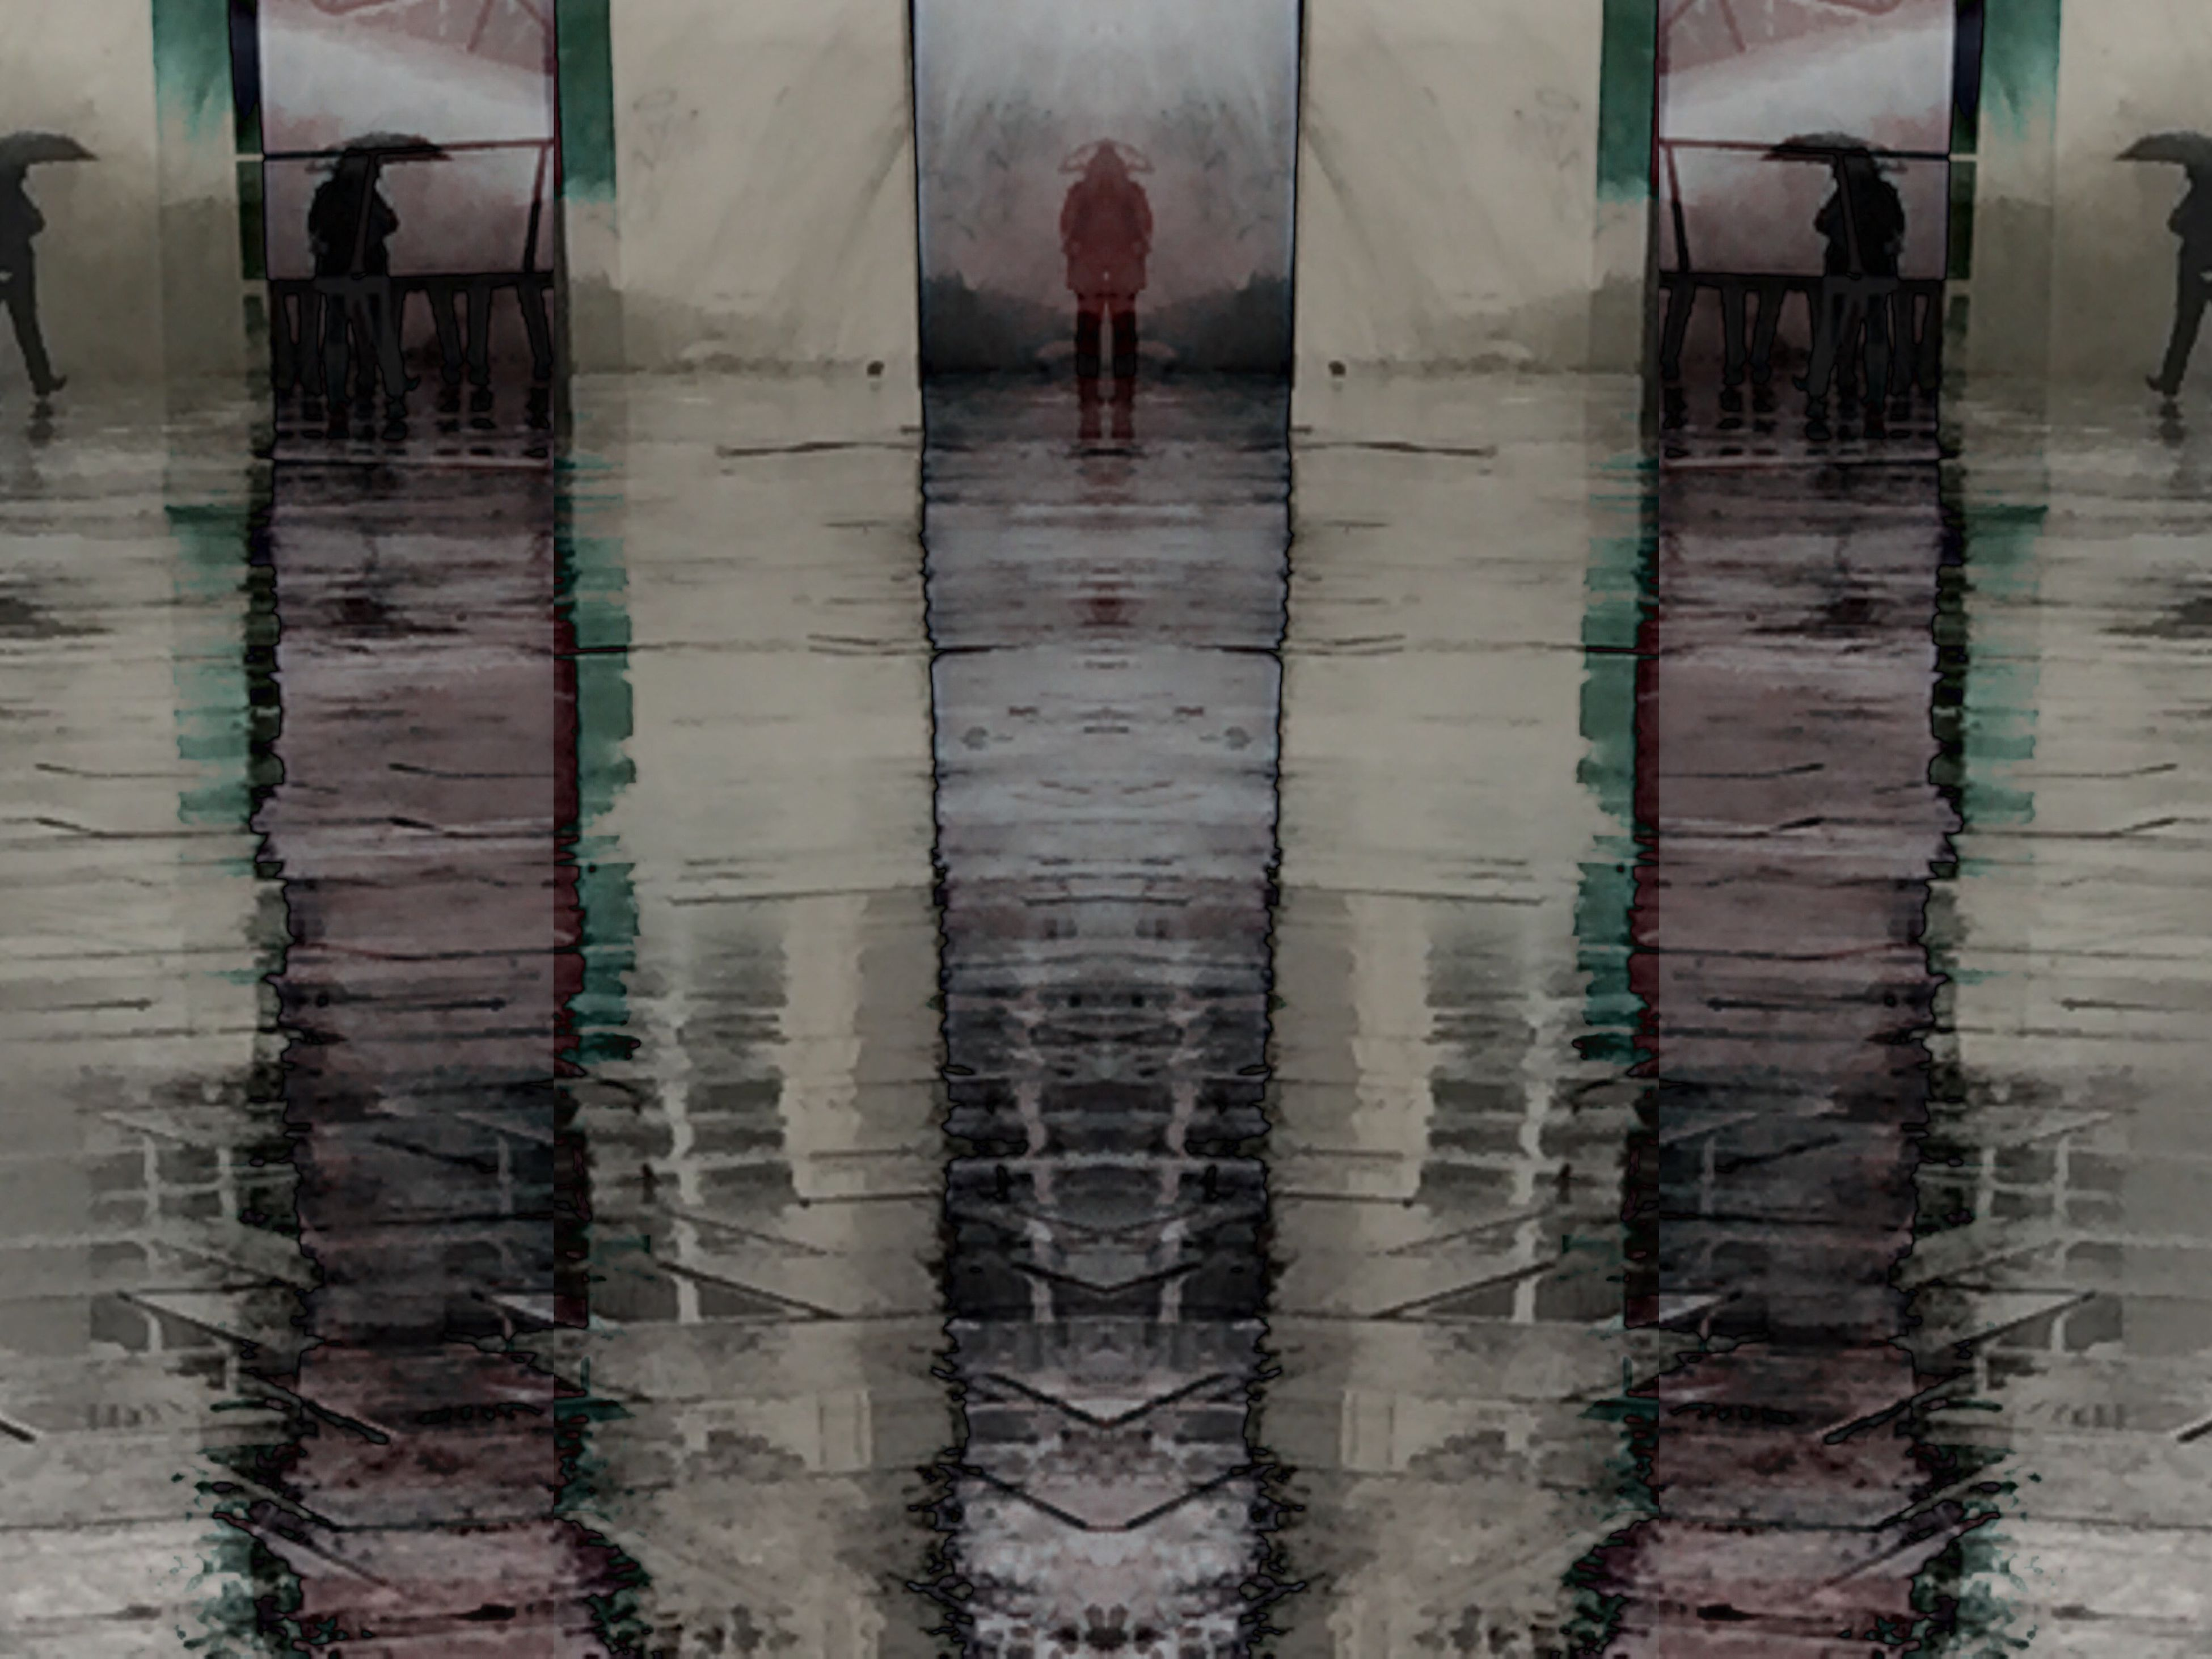 reflection, rain, wet, weather, puddle, men, real people, outdoors, adult, people, adults only, day